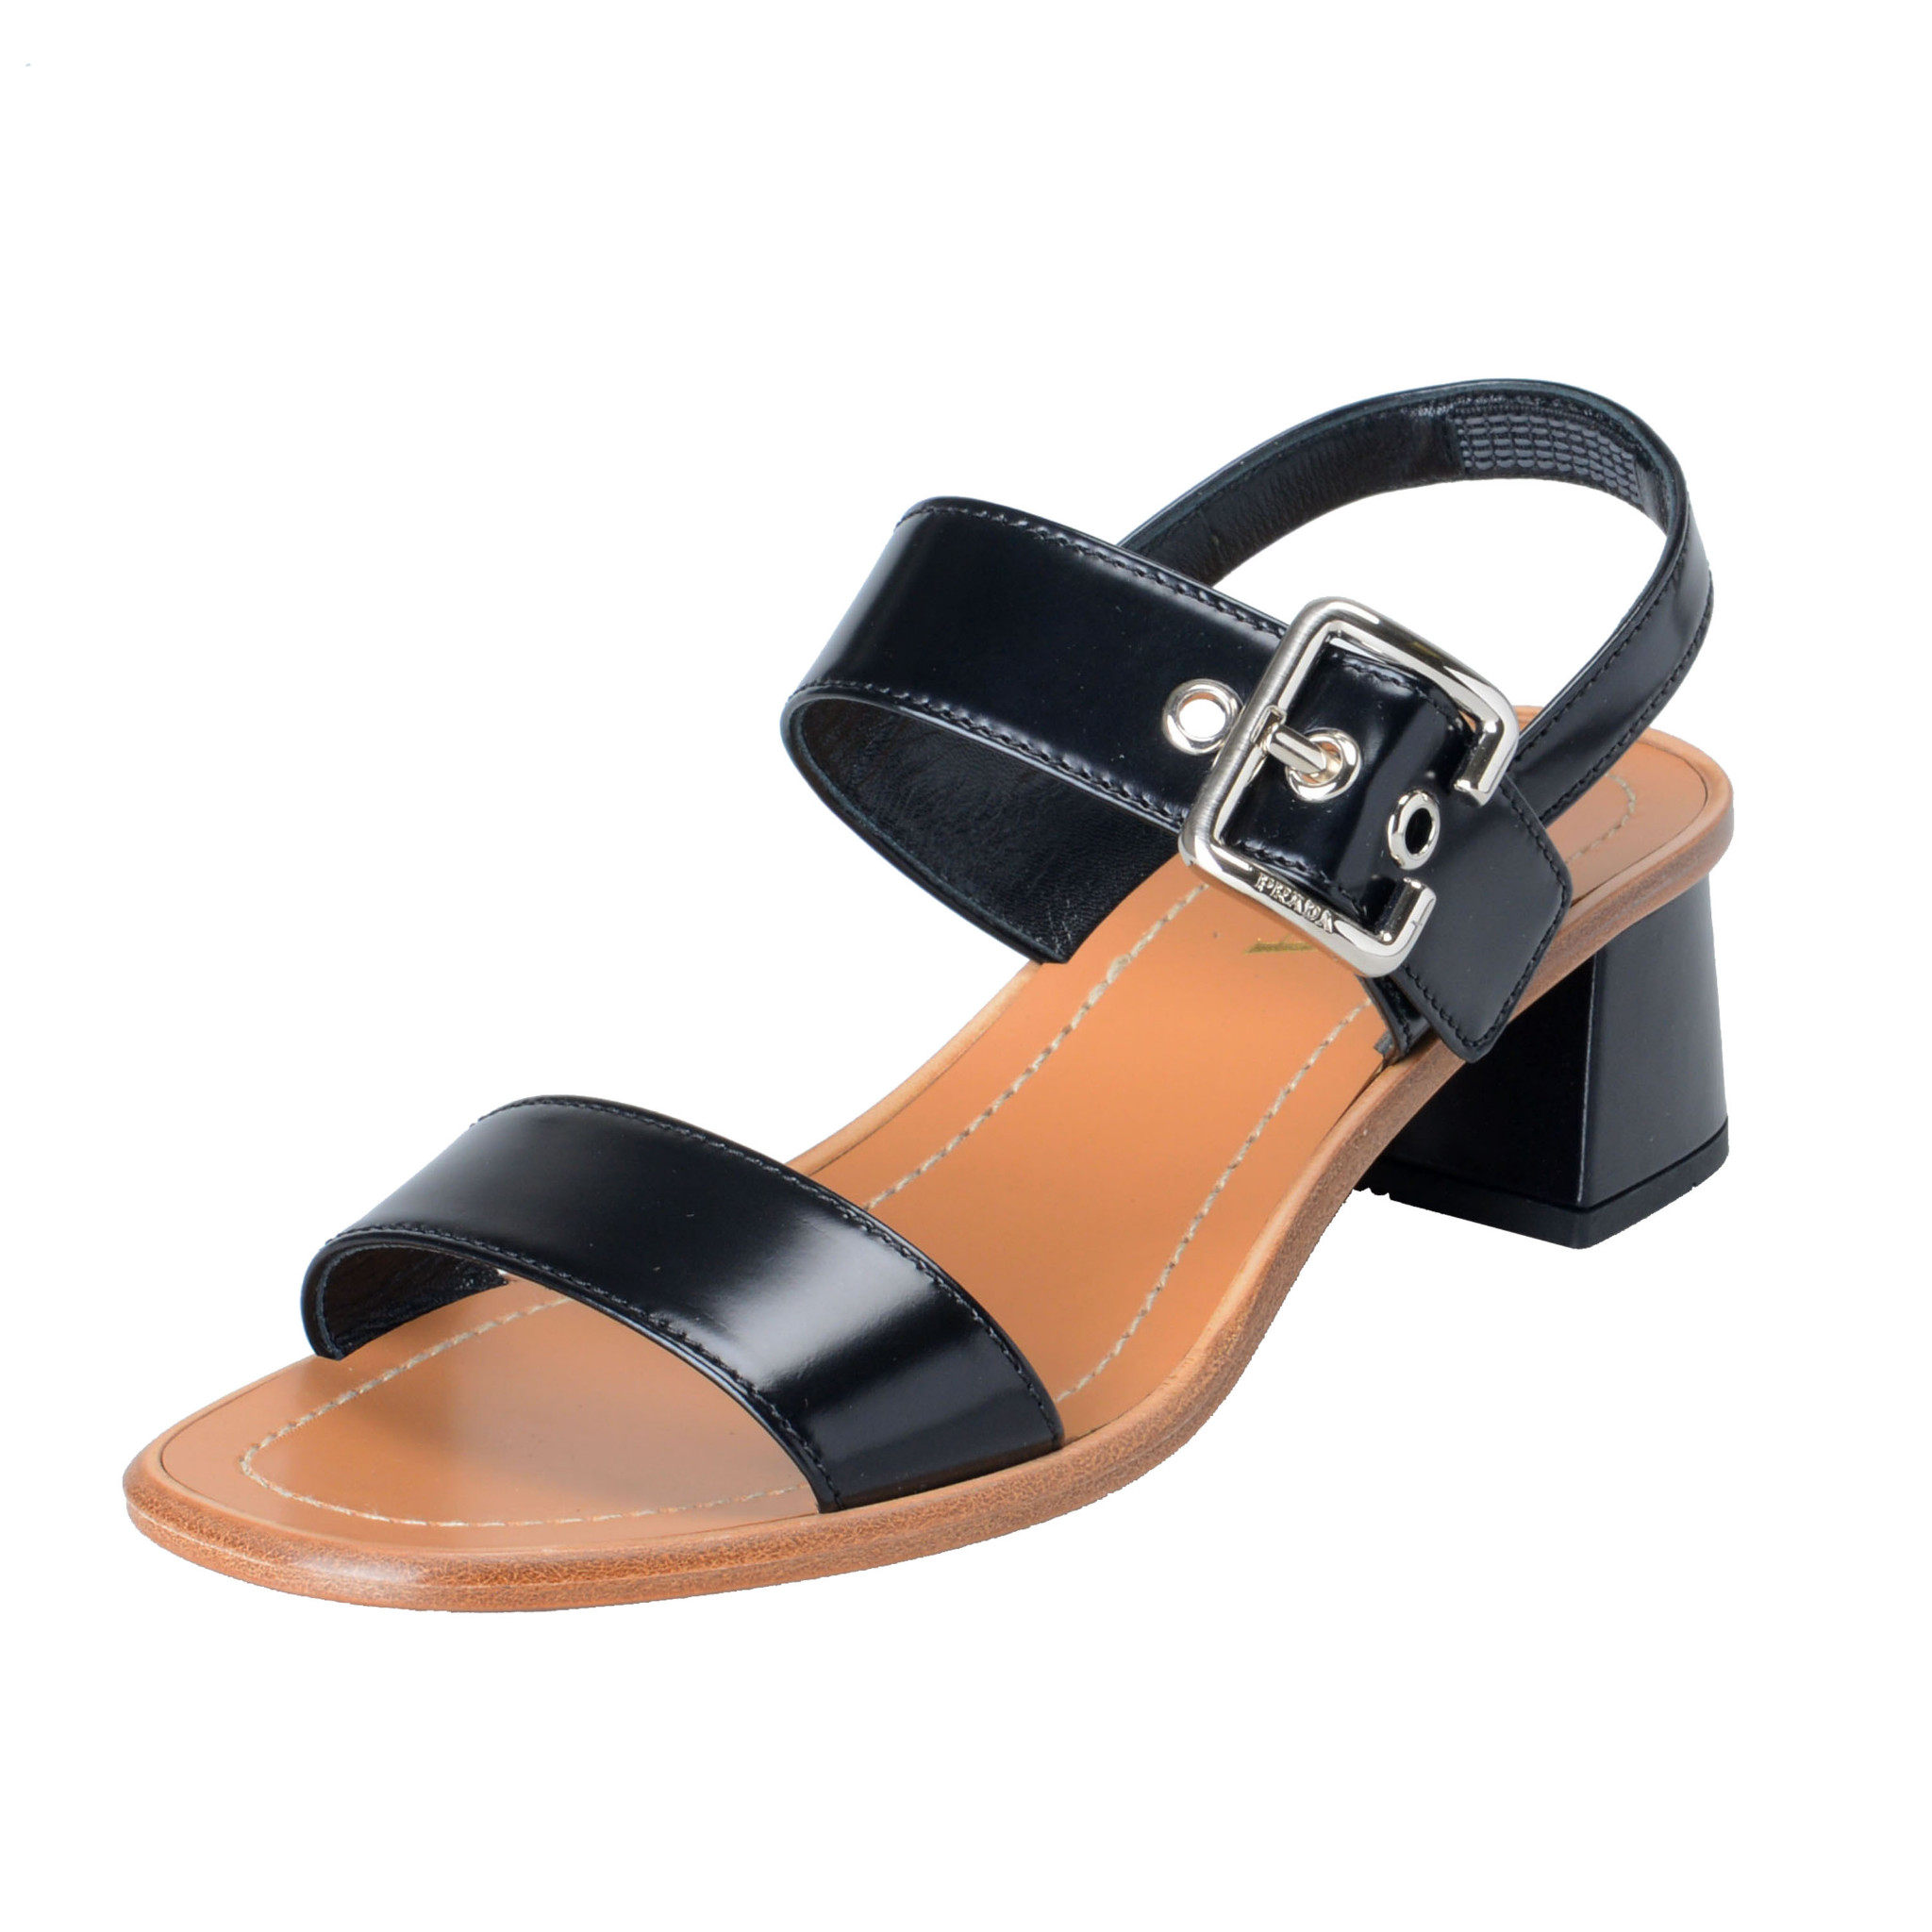 5a0bc7b9fea Details about Prada Women s Black Leather Heeled Slingbacks Sandals Shoes 6  7.5 8 9.5 10 10.5